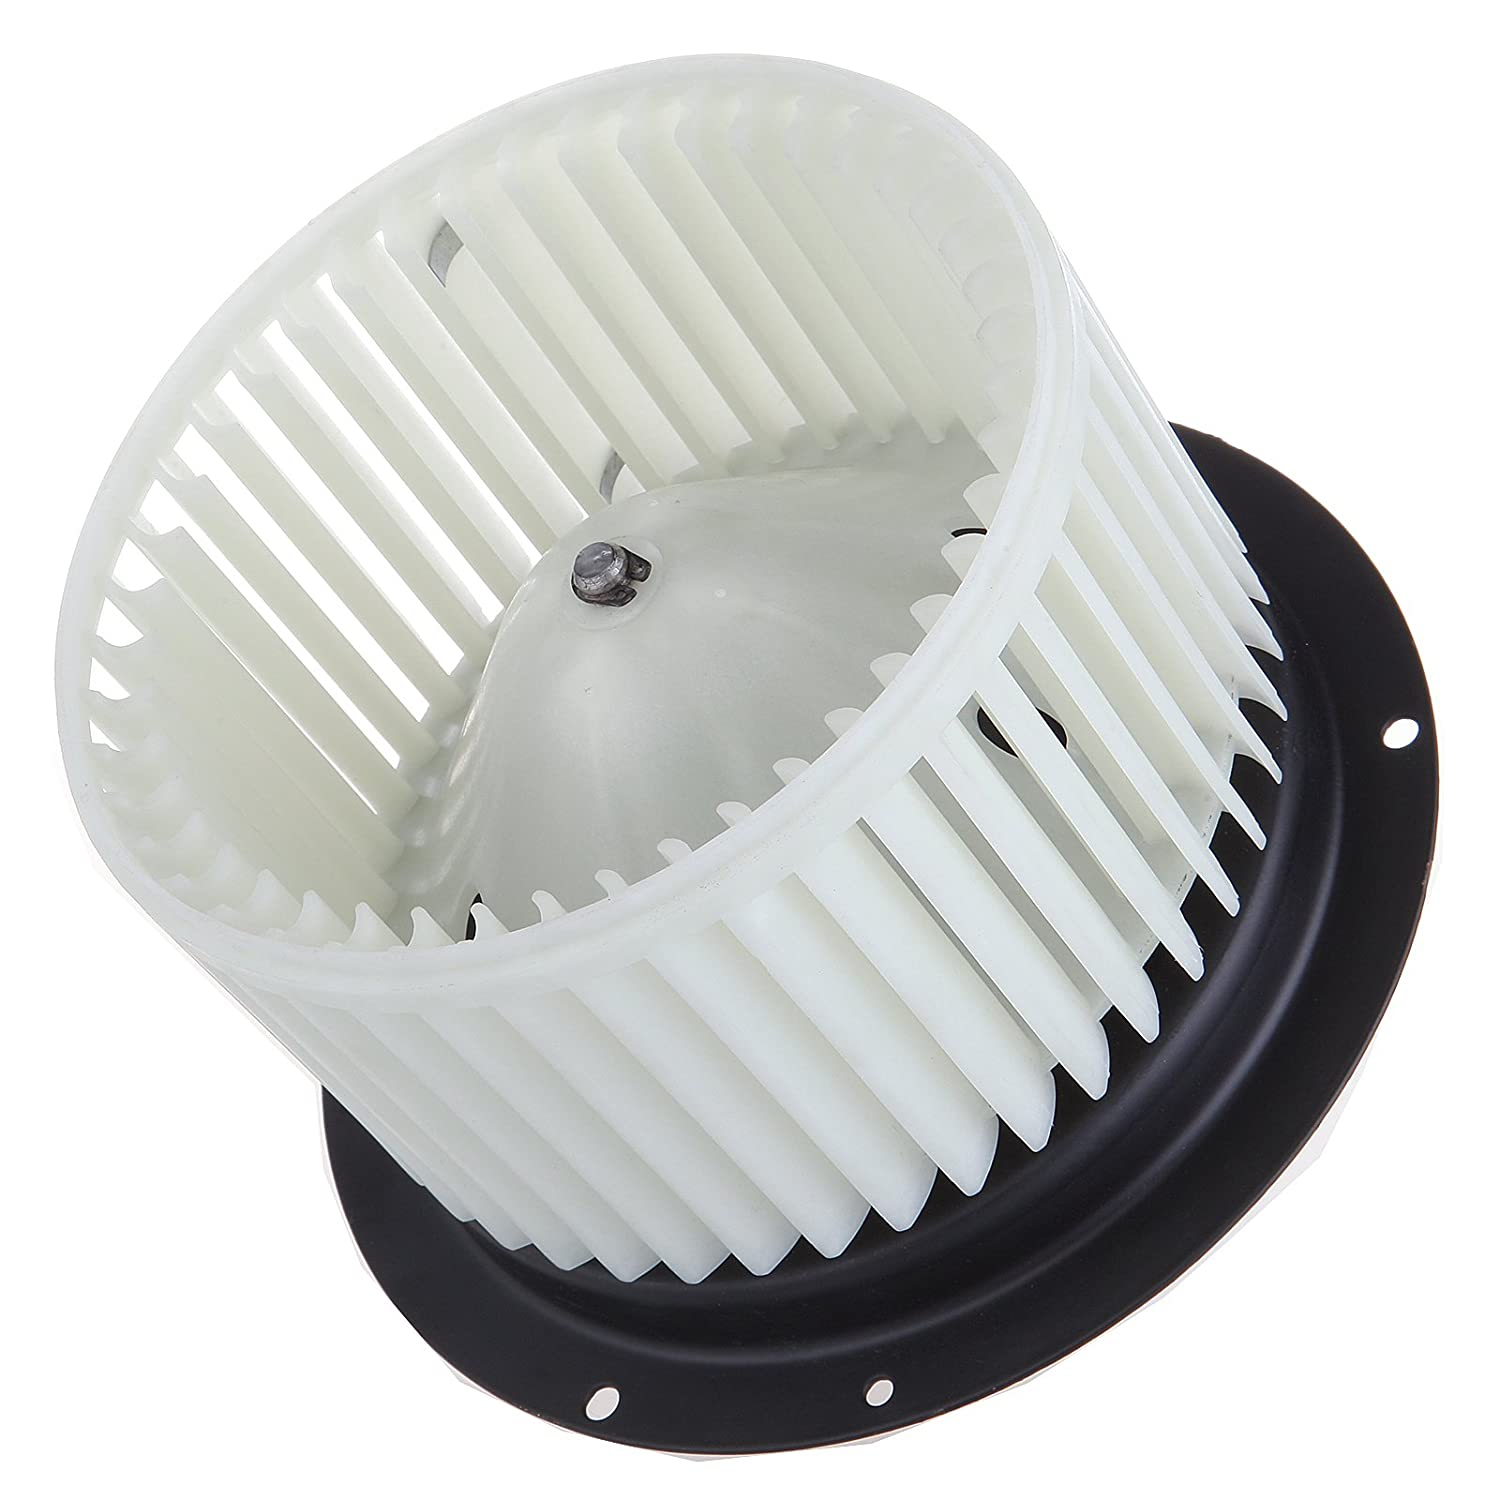 OCPTY A//C Heater Blower Motor ABS w//Fan Cage Air Conditioning HVAC fit for 2000-2005 ford Excursion//1999-2007 ford F-250 Super Duty//1999-2007 ford F-350 Super Duty//1999-2007 ford F-450 Super Duty